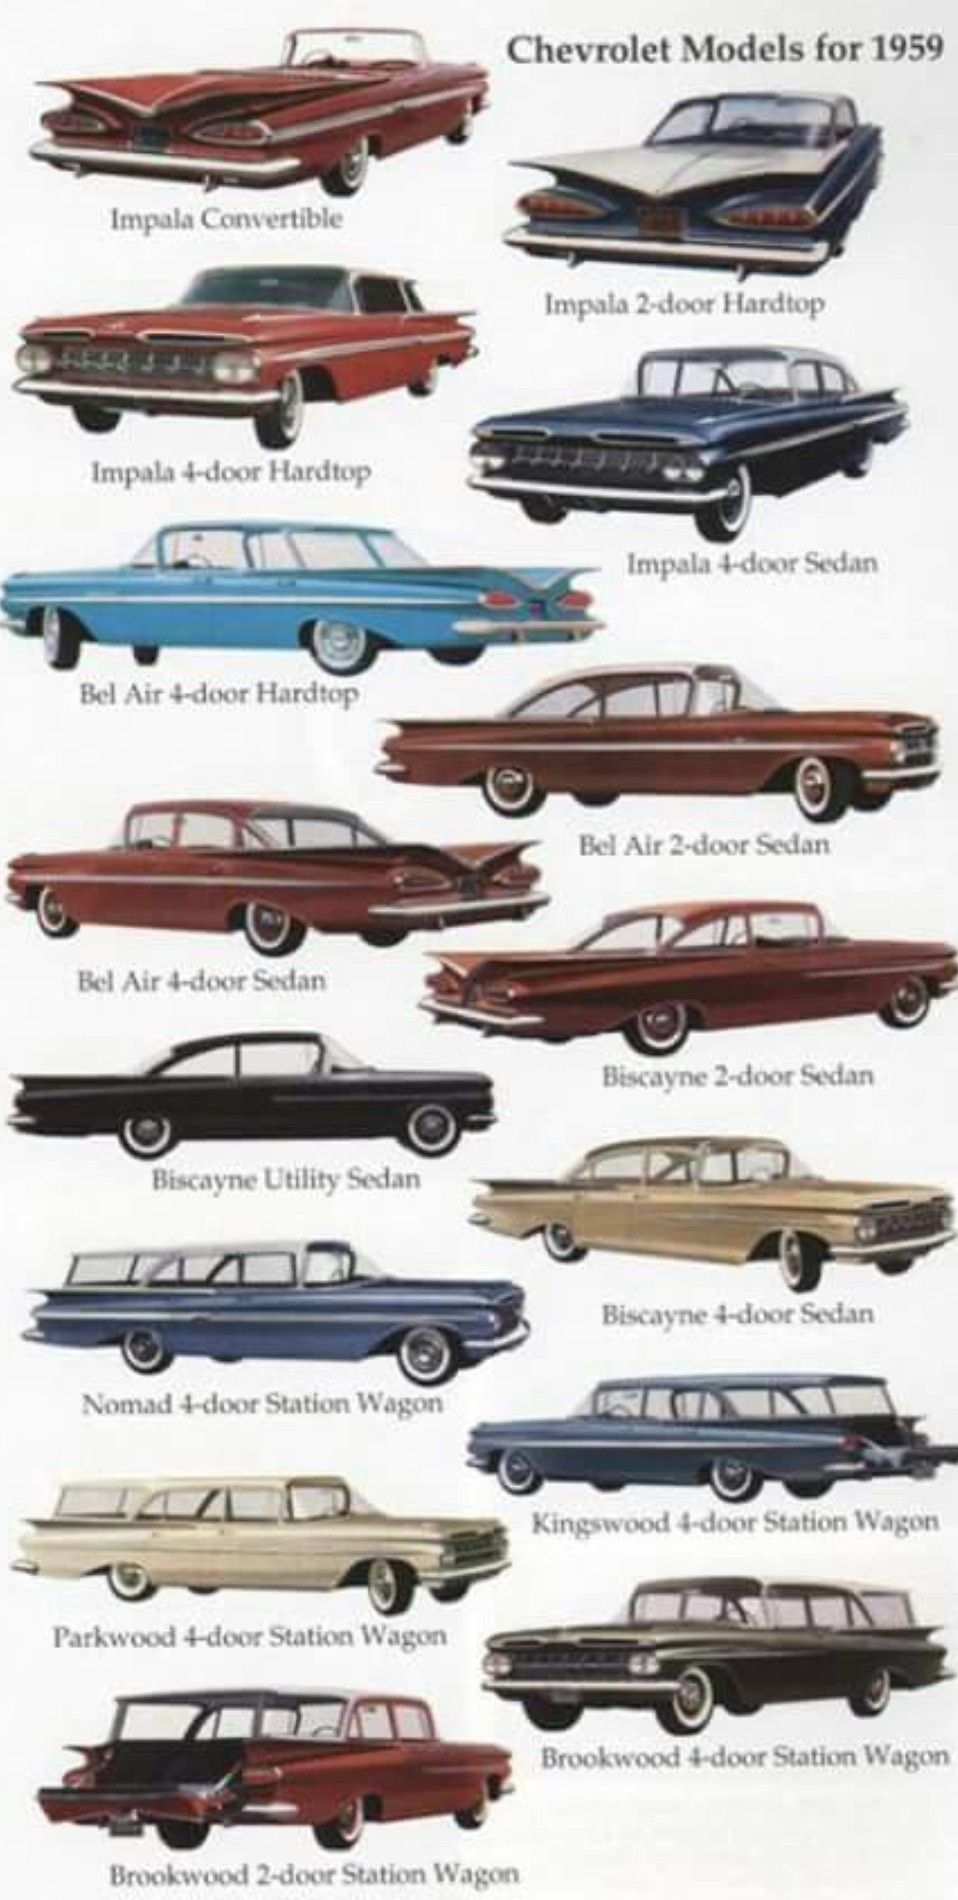 1959 Chevy Line Up Classic Cars Trucks Classic Cars Vintage